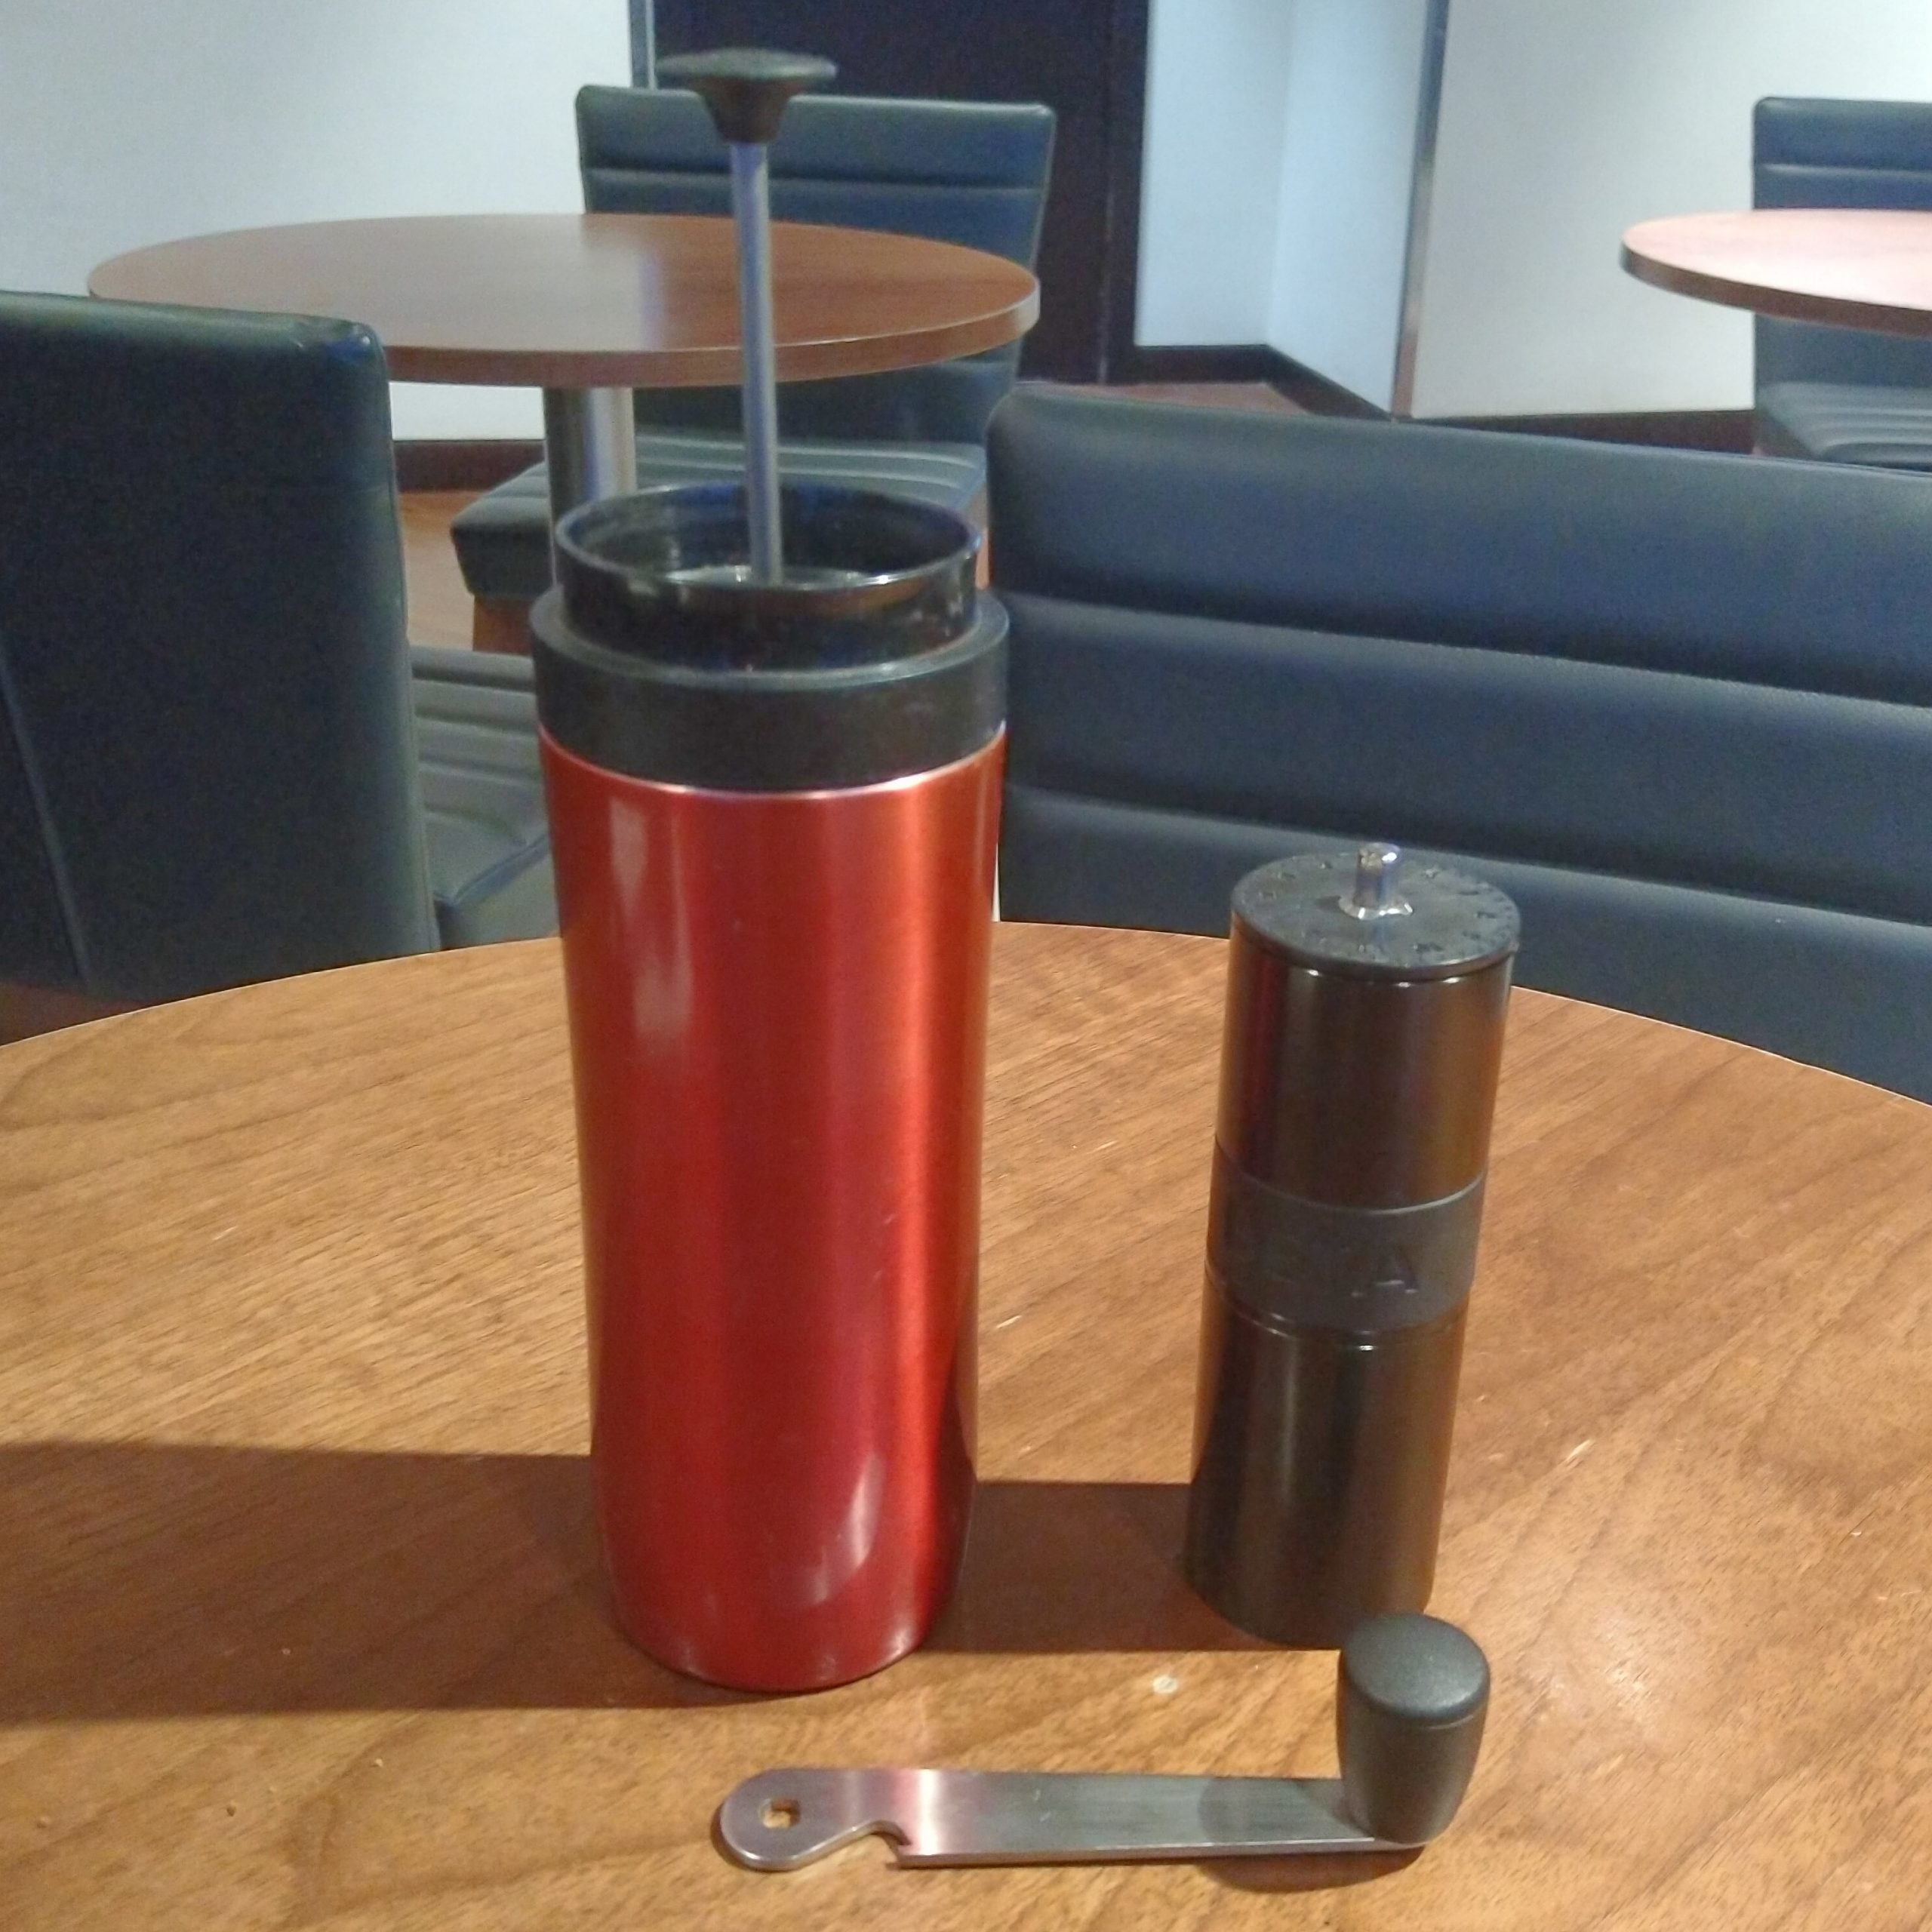 Making my own coffee again, this time in the British Airways lounge at Boston Logan, with my trusty Travel Press and Aergrind.